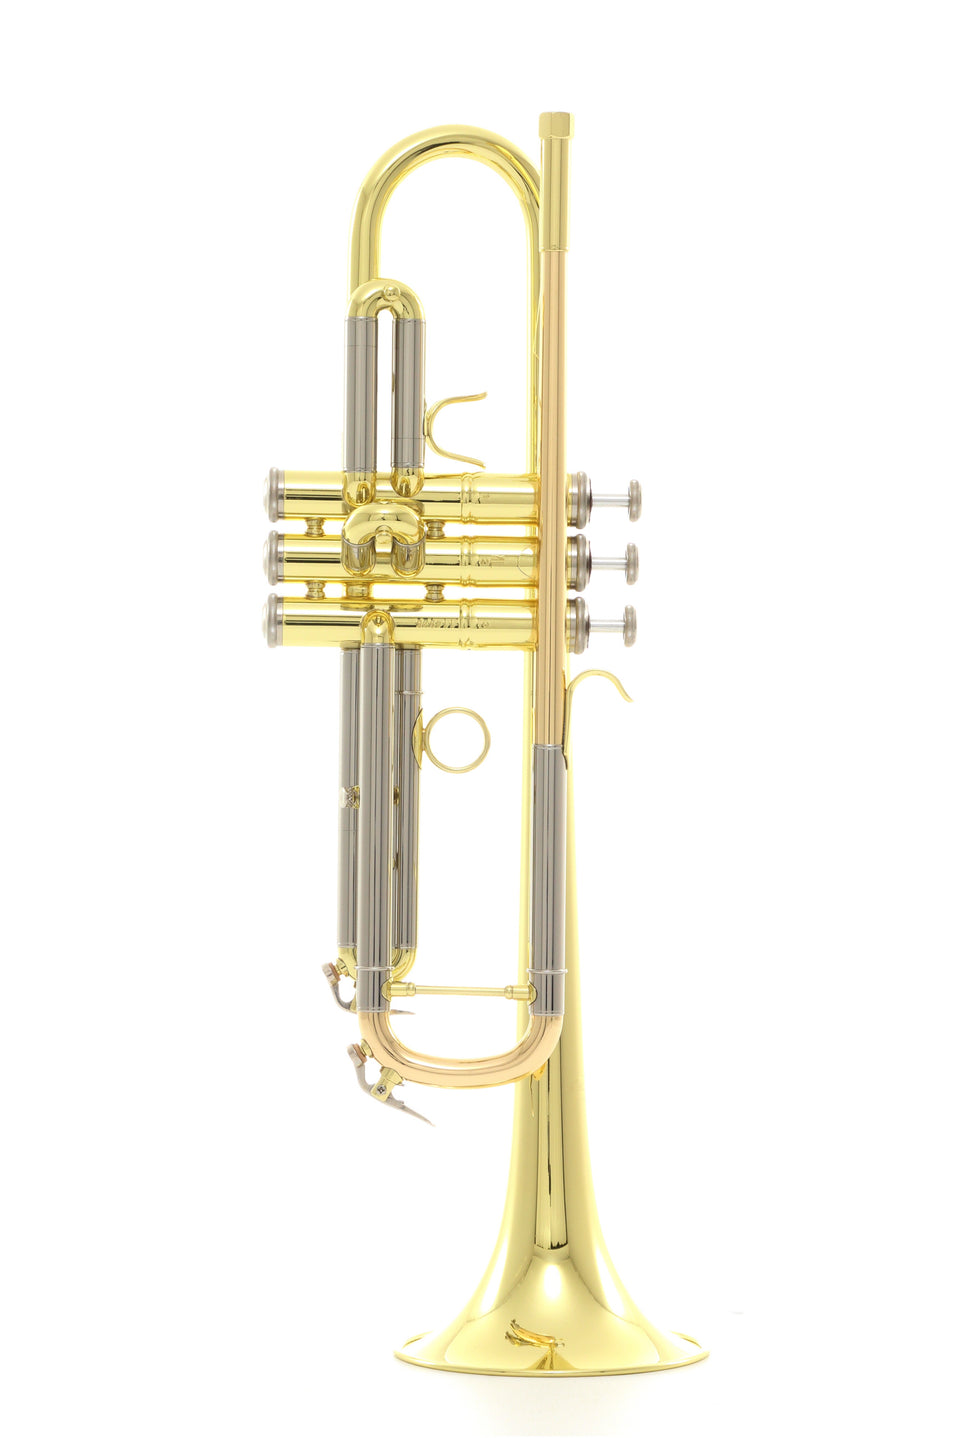 Schagerl TR-421L Academica Student Trumpet